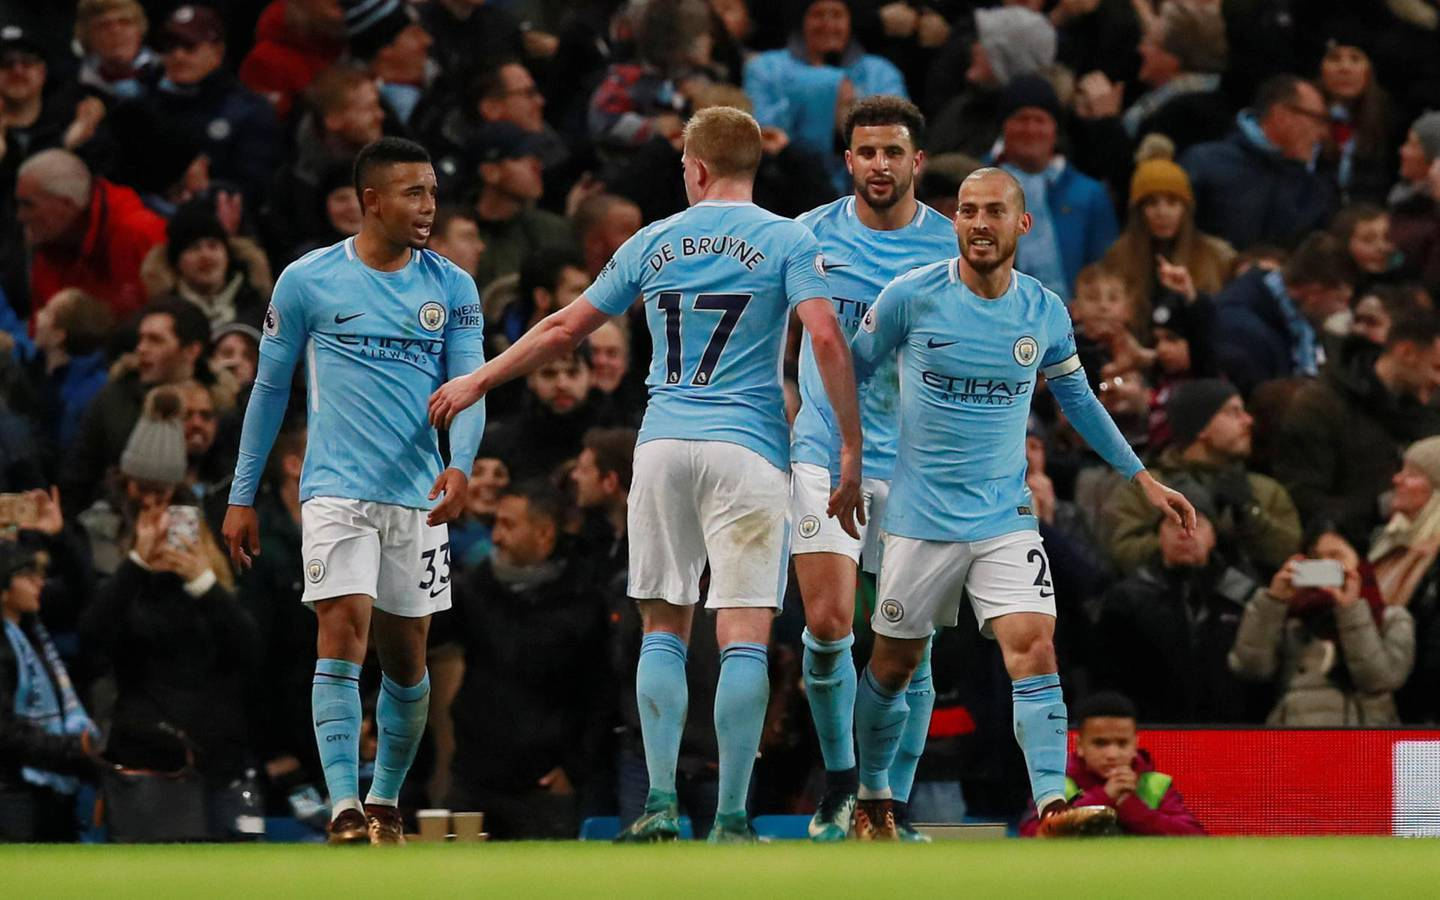 """Soccer Football - Premier League - Manchester City vs West Ham United - Etihad Stadium, Manchester, Britain - December 3, 2017   Manchester City's David Silva celebrates scoring their second goal with Kevin De Bruyne and Gabriel Jesus     Action Images via Reuters/Jason Cairnduff    EDITORIAL USE ONLY. No use with unauthorized audio, video, data, fixture lists, club/league logos or """"live"""" services. Online in-match use limited to 75 images, no video emulation. No use in betting, games or single club/league/player publications. Please contact your account representative for further details."""